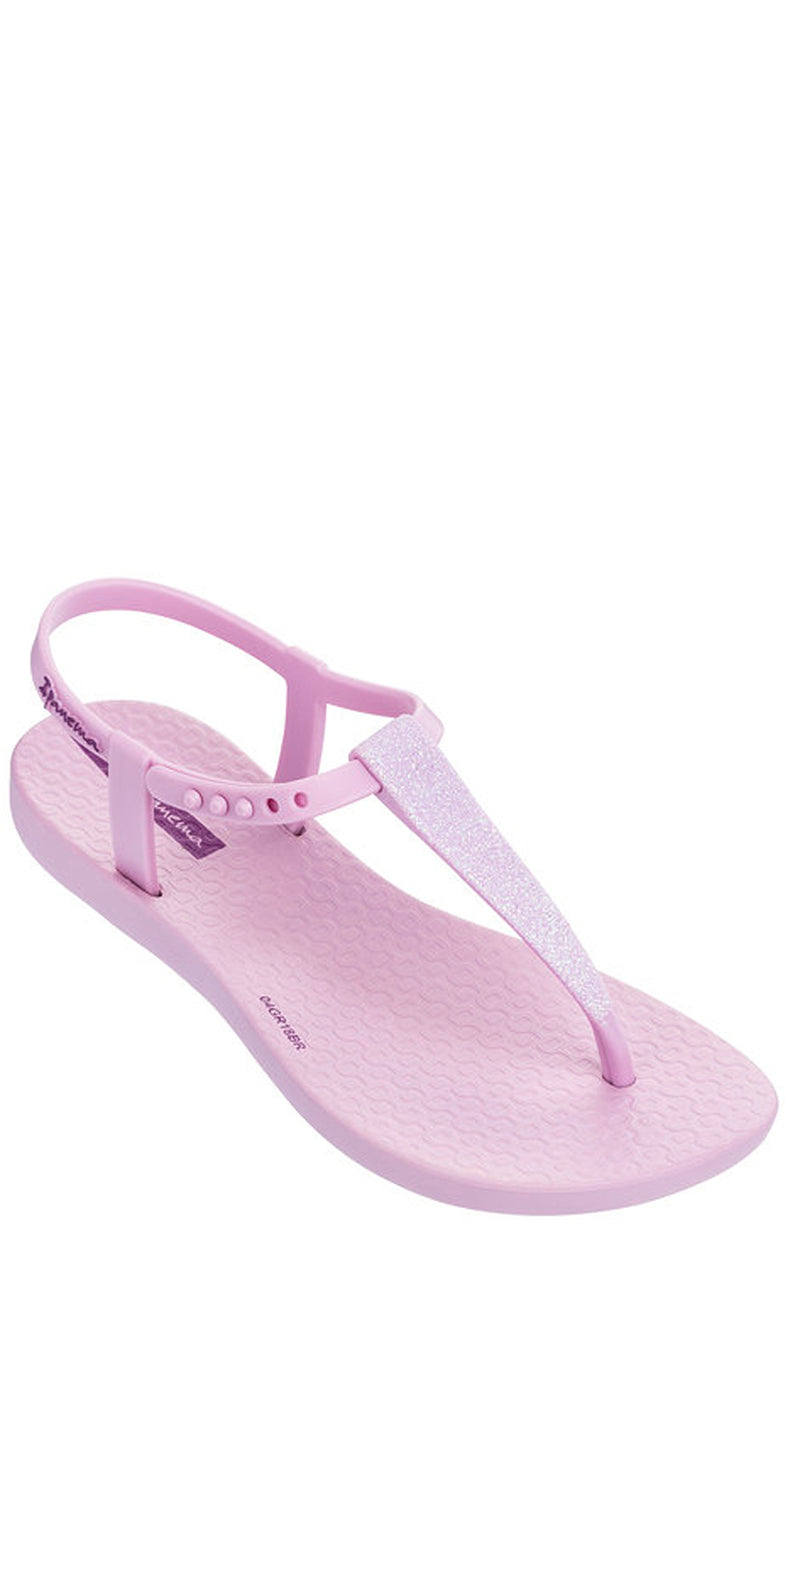 iPanema Shimmerkid T-Strap Sandal in Pink 22926-82306